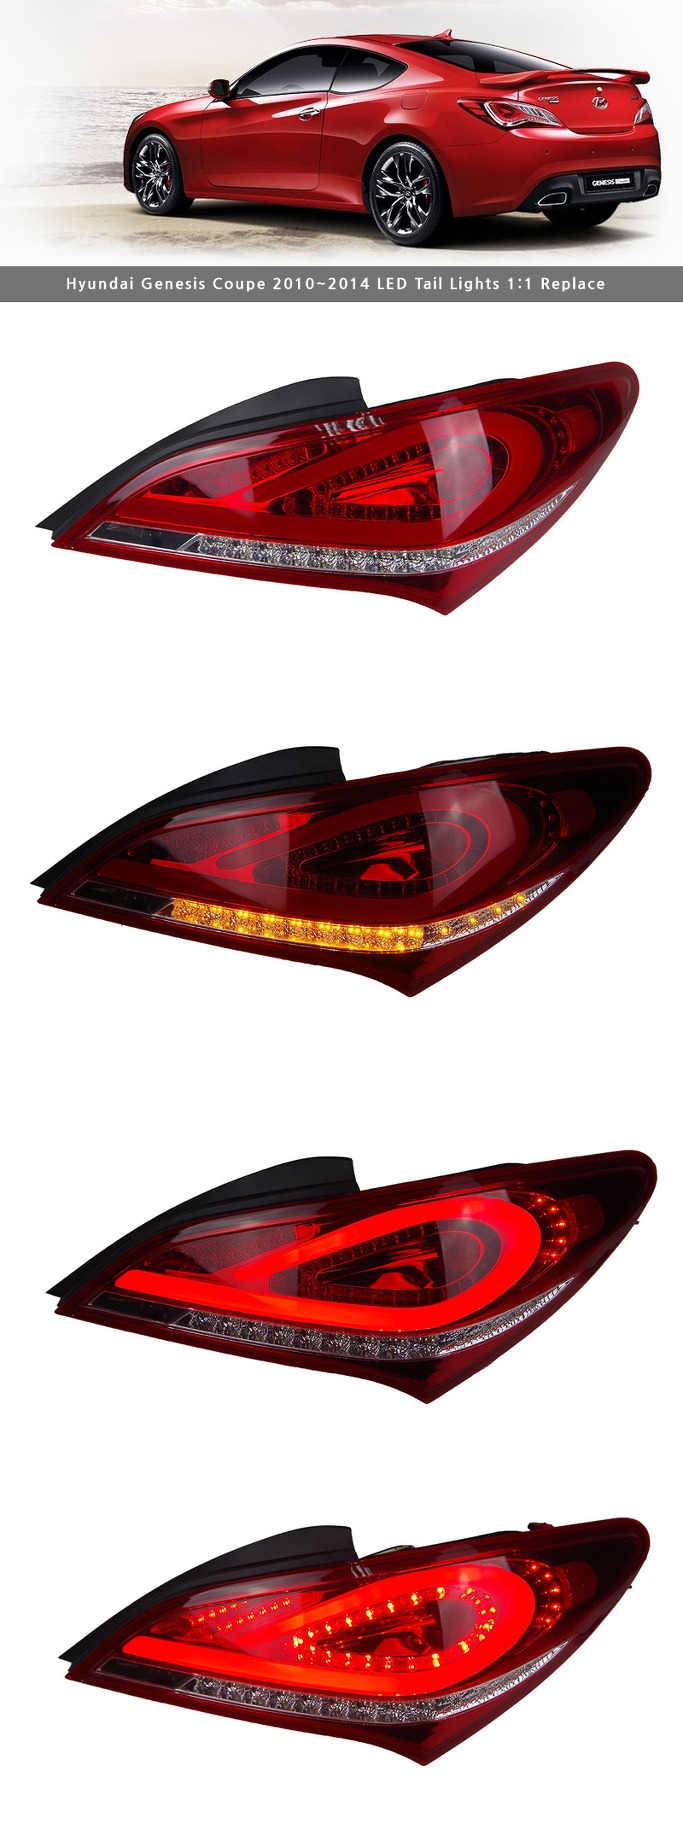 led tail lights rear lamp 1 1 replacement for hyundai genesis coupe 2009 2015 ebay. Black Bedroom Furniture Sets. Home Design Ideas